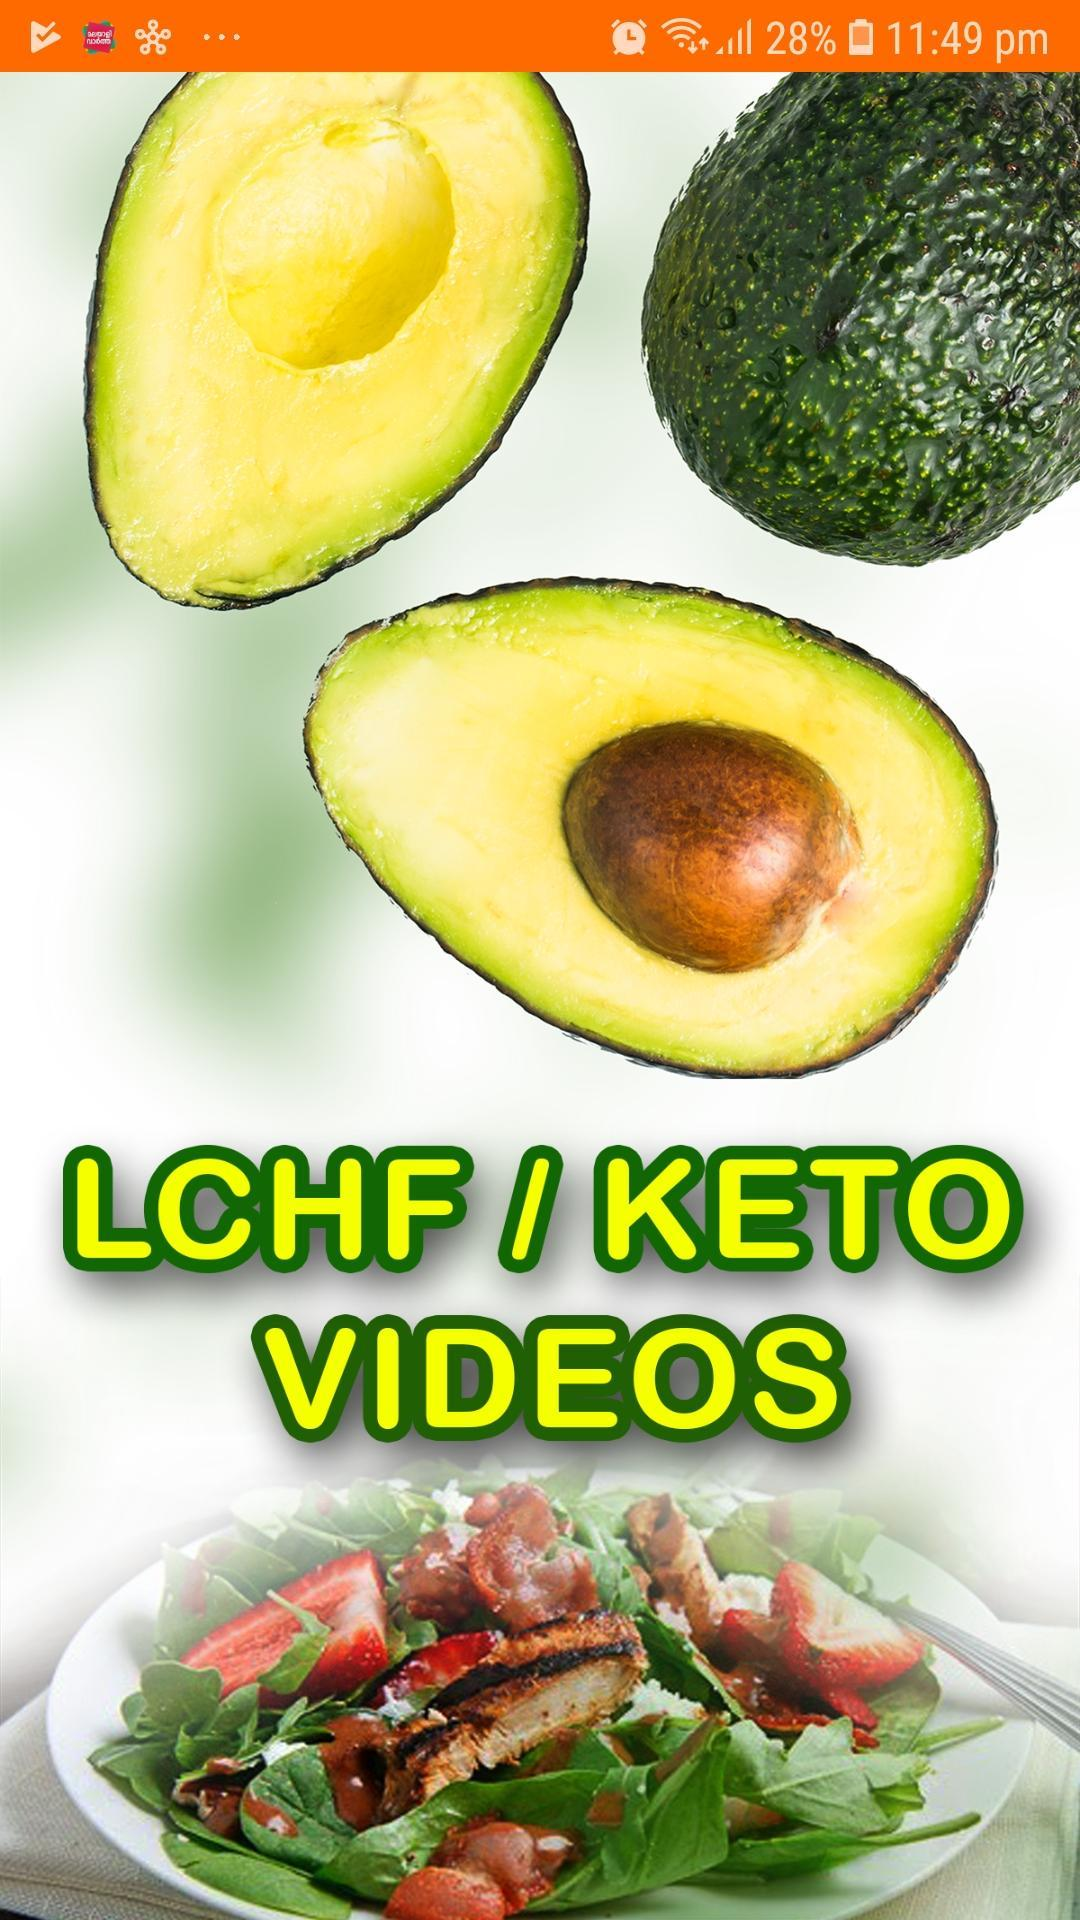 Lchf Keto Diet Malayalam For Android Apk Download